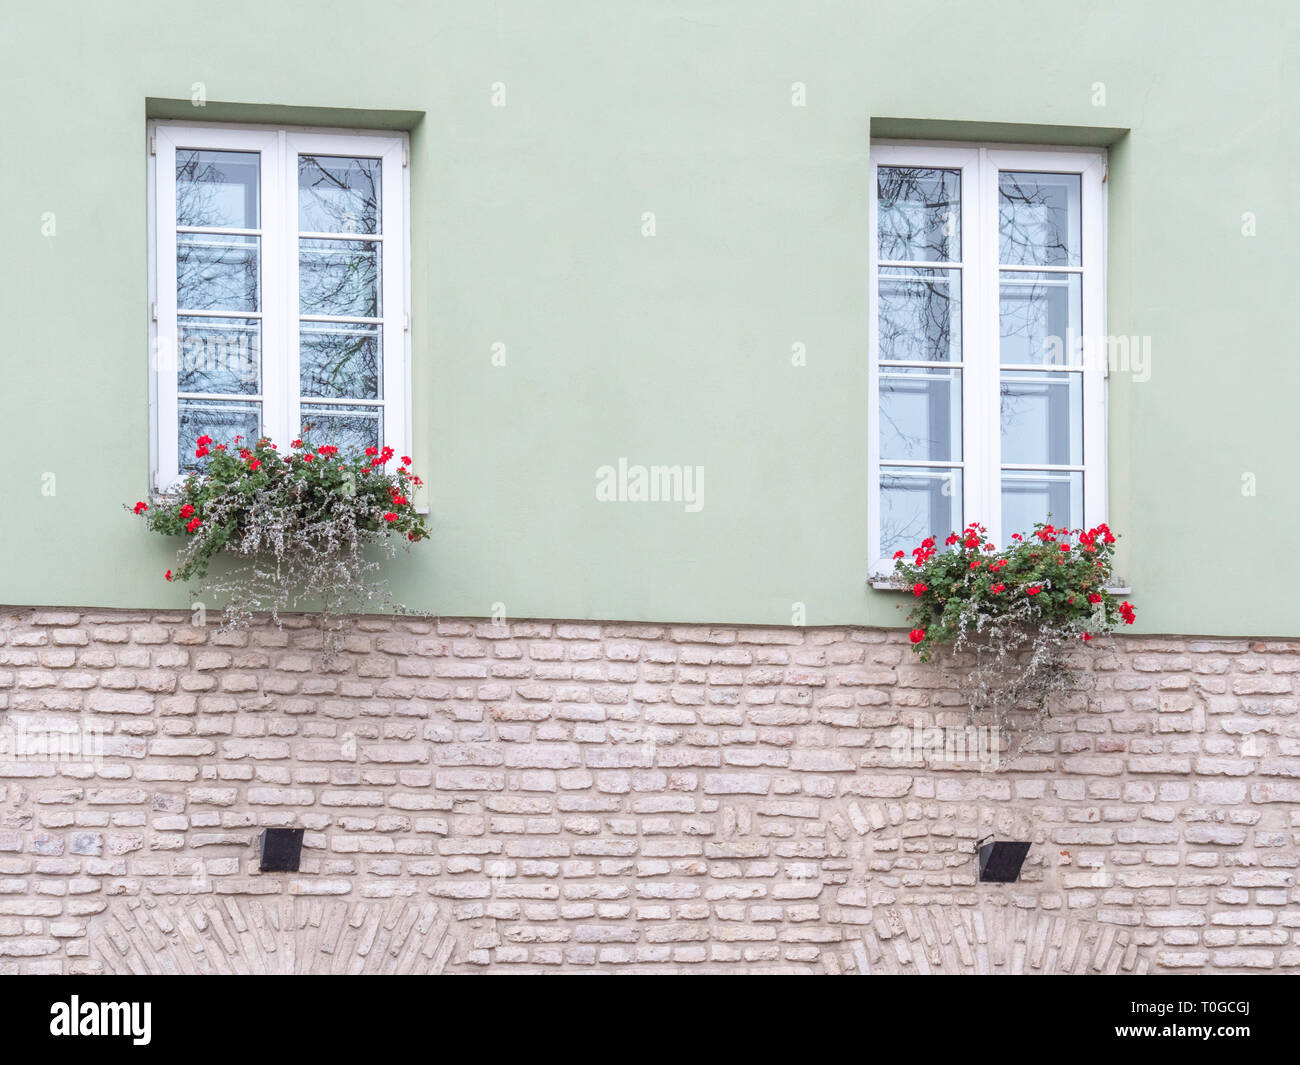 Typical european window with flowers. Flower box below a windows on an apartment building - Stock Image